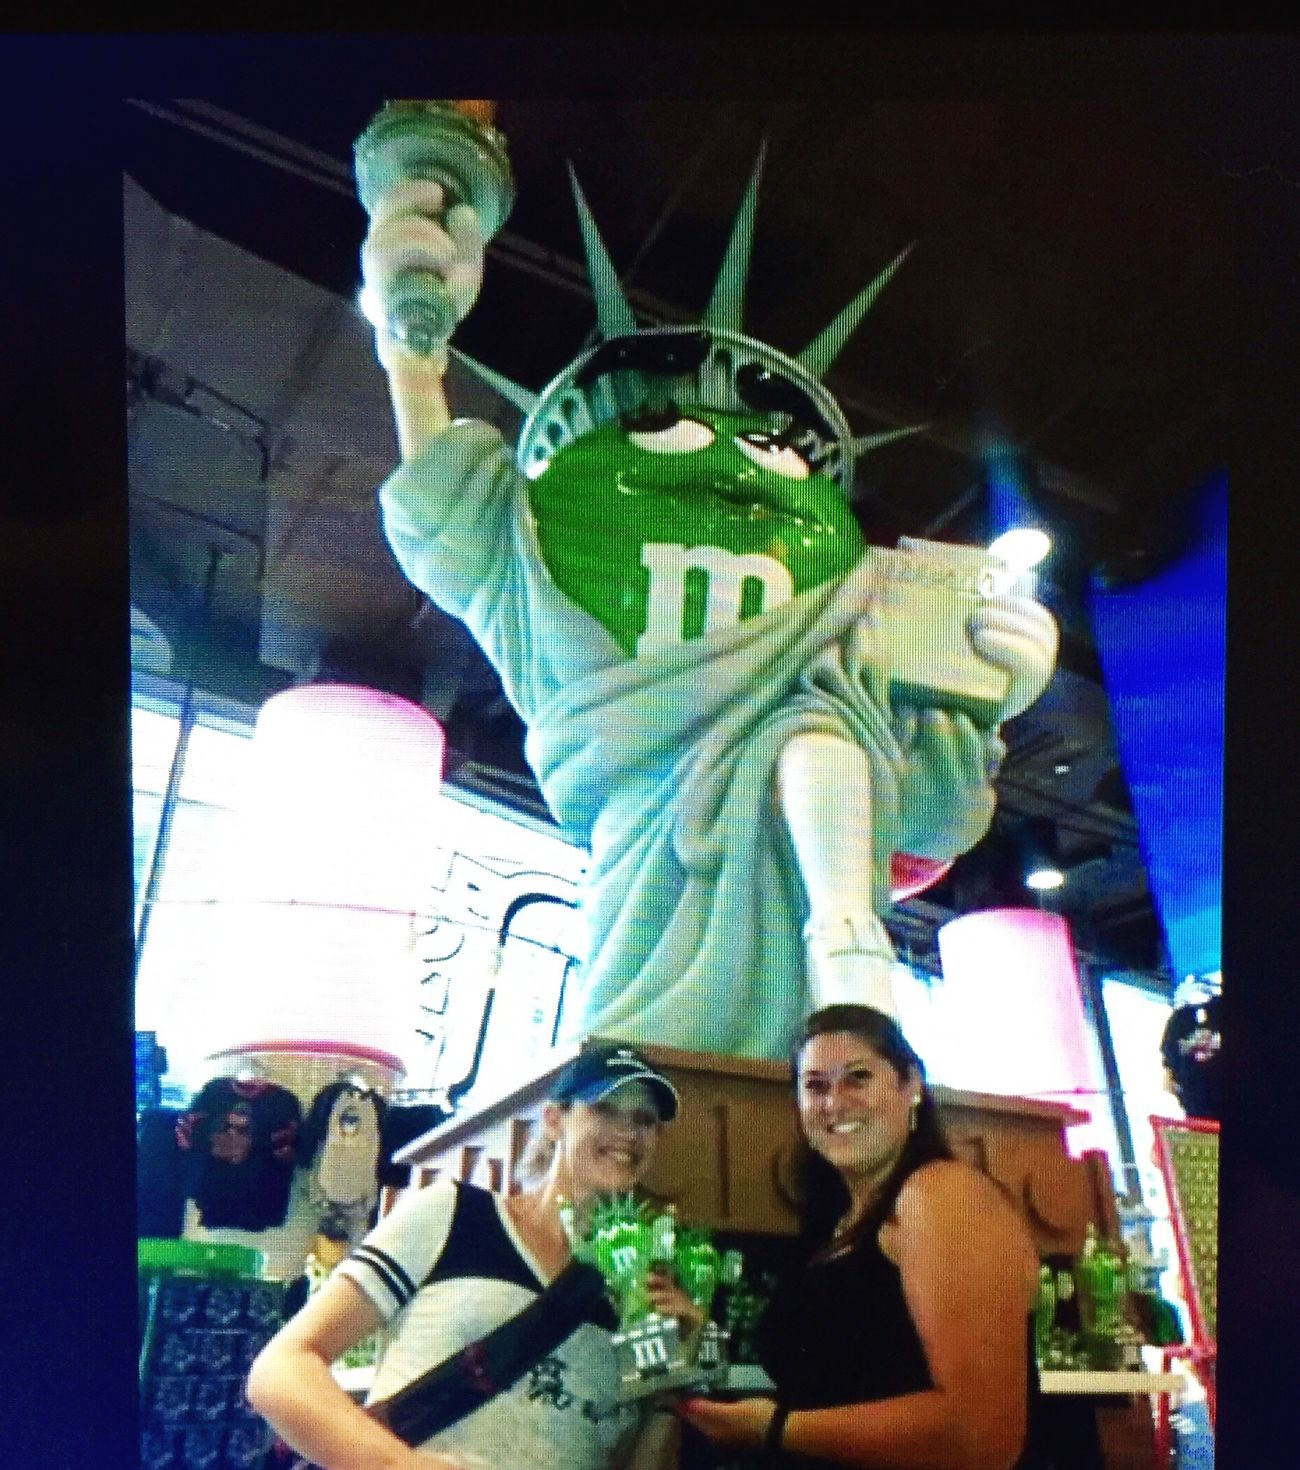 Family trip to NYC. Seeing the sights. Including the M&M store 😉 Family Family Time Family❤ Family Matters Cousin Cousins ❤ NYC NYC Photography NYC Street Photography M&m M&m Photography M&m's Vacation Time Summertime Trip Trip Photo Vacation Statue Leisure Activity Real People Smiling Indoors  Crowd Photo Enjoying Life